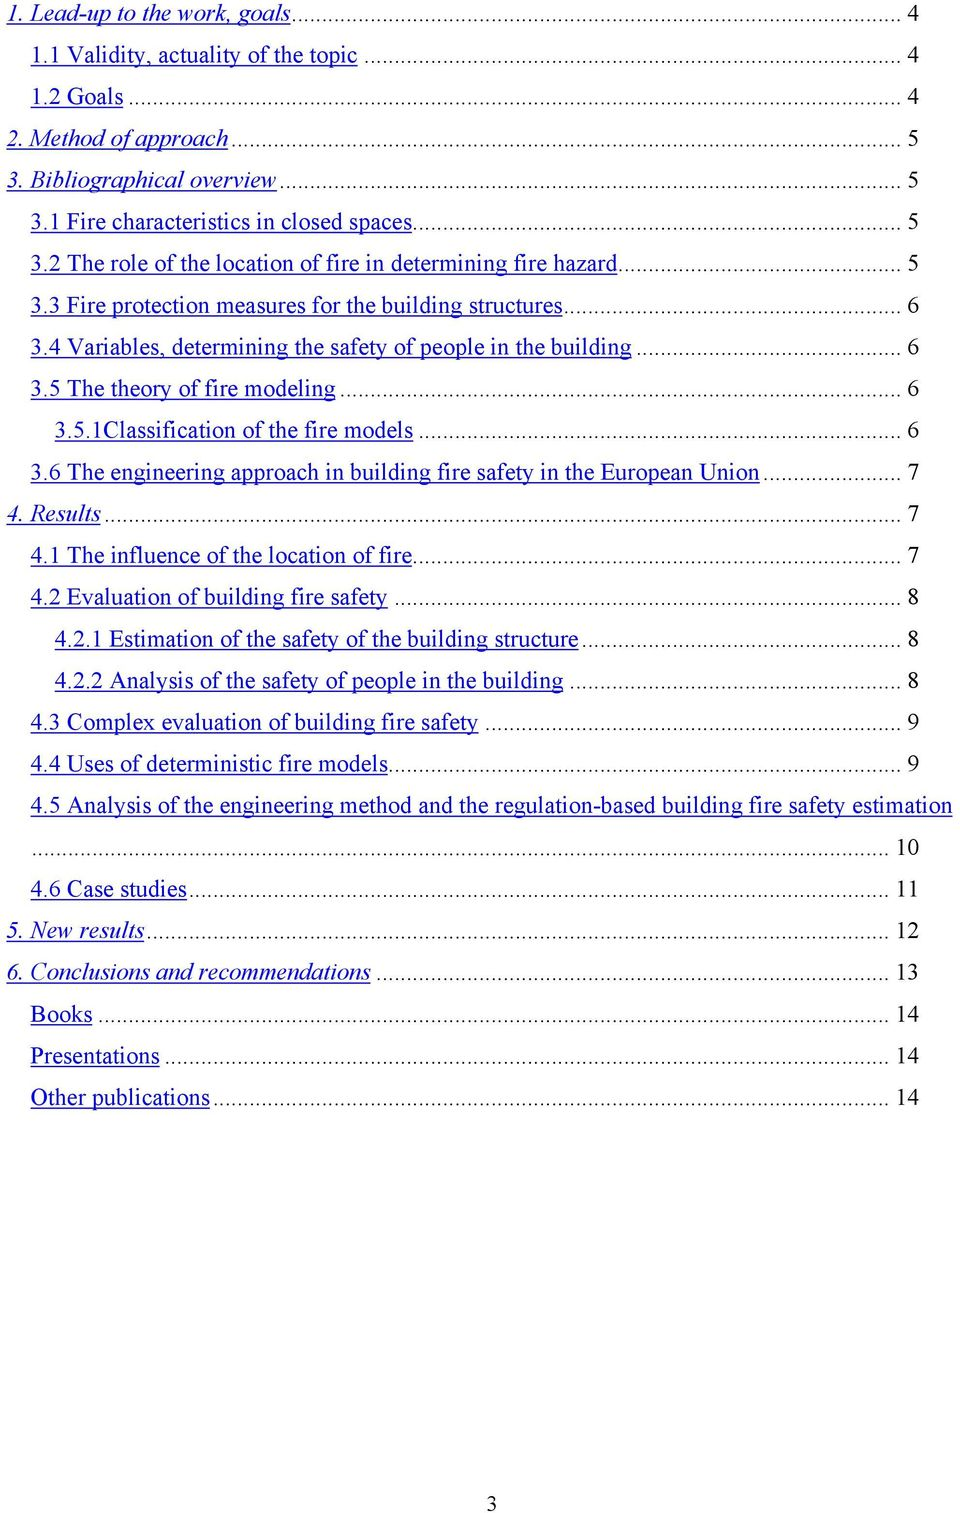 .. 6 3.6 The engineering approach in building fire safety in the European Union... 7 4. Results... 7 4.1 The influence of the location of fire... 7 4.2